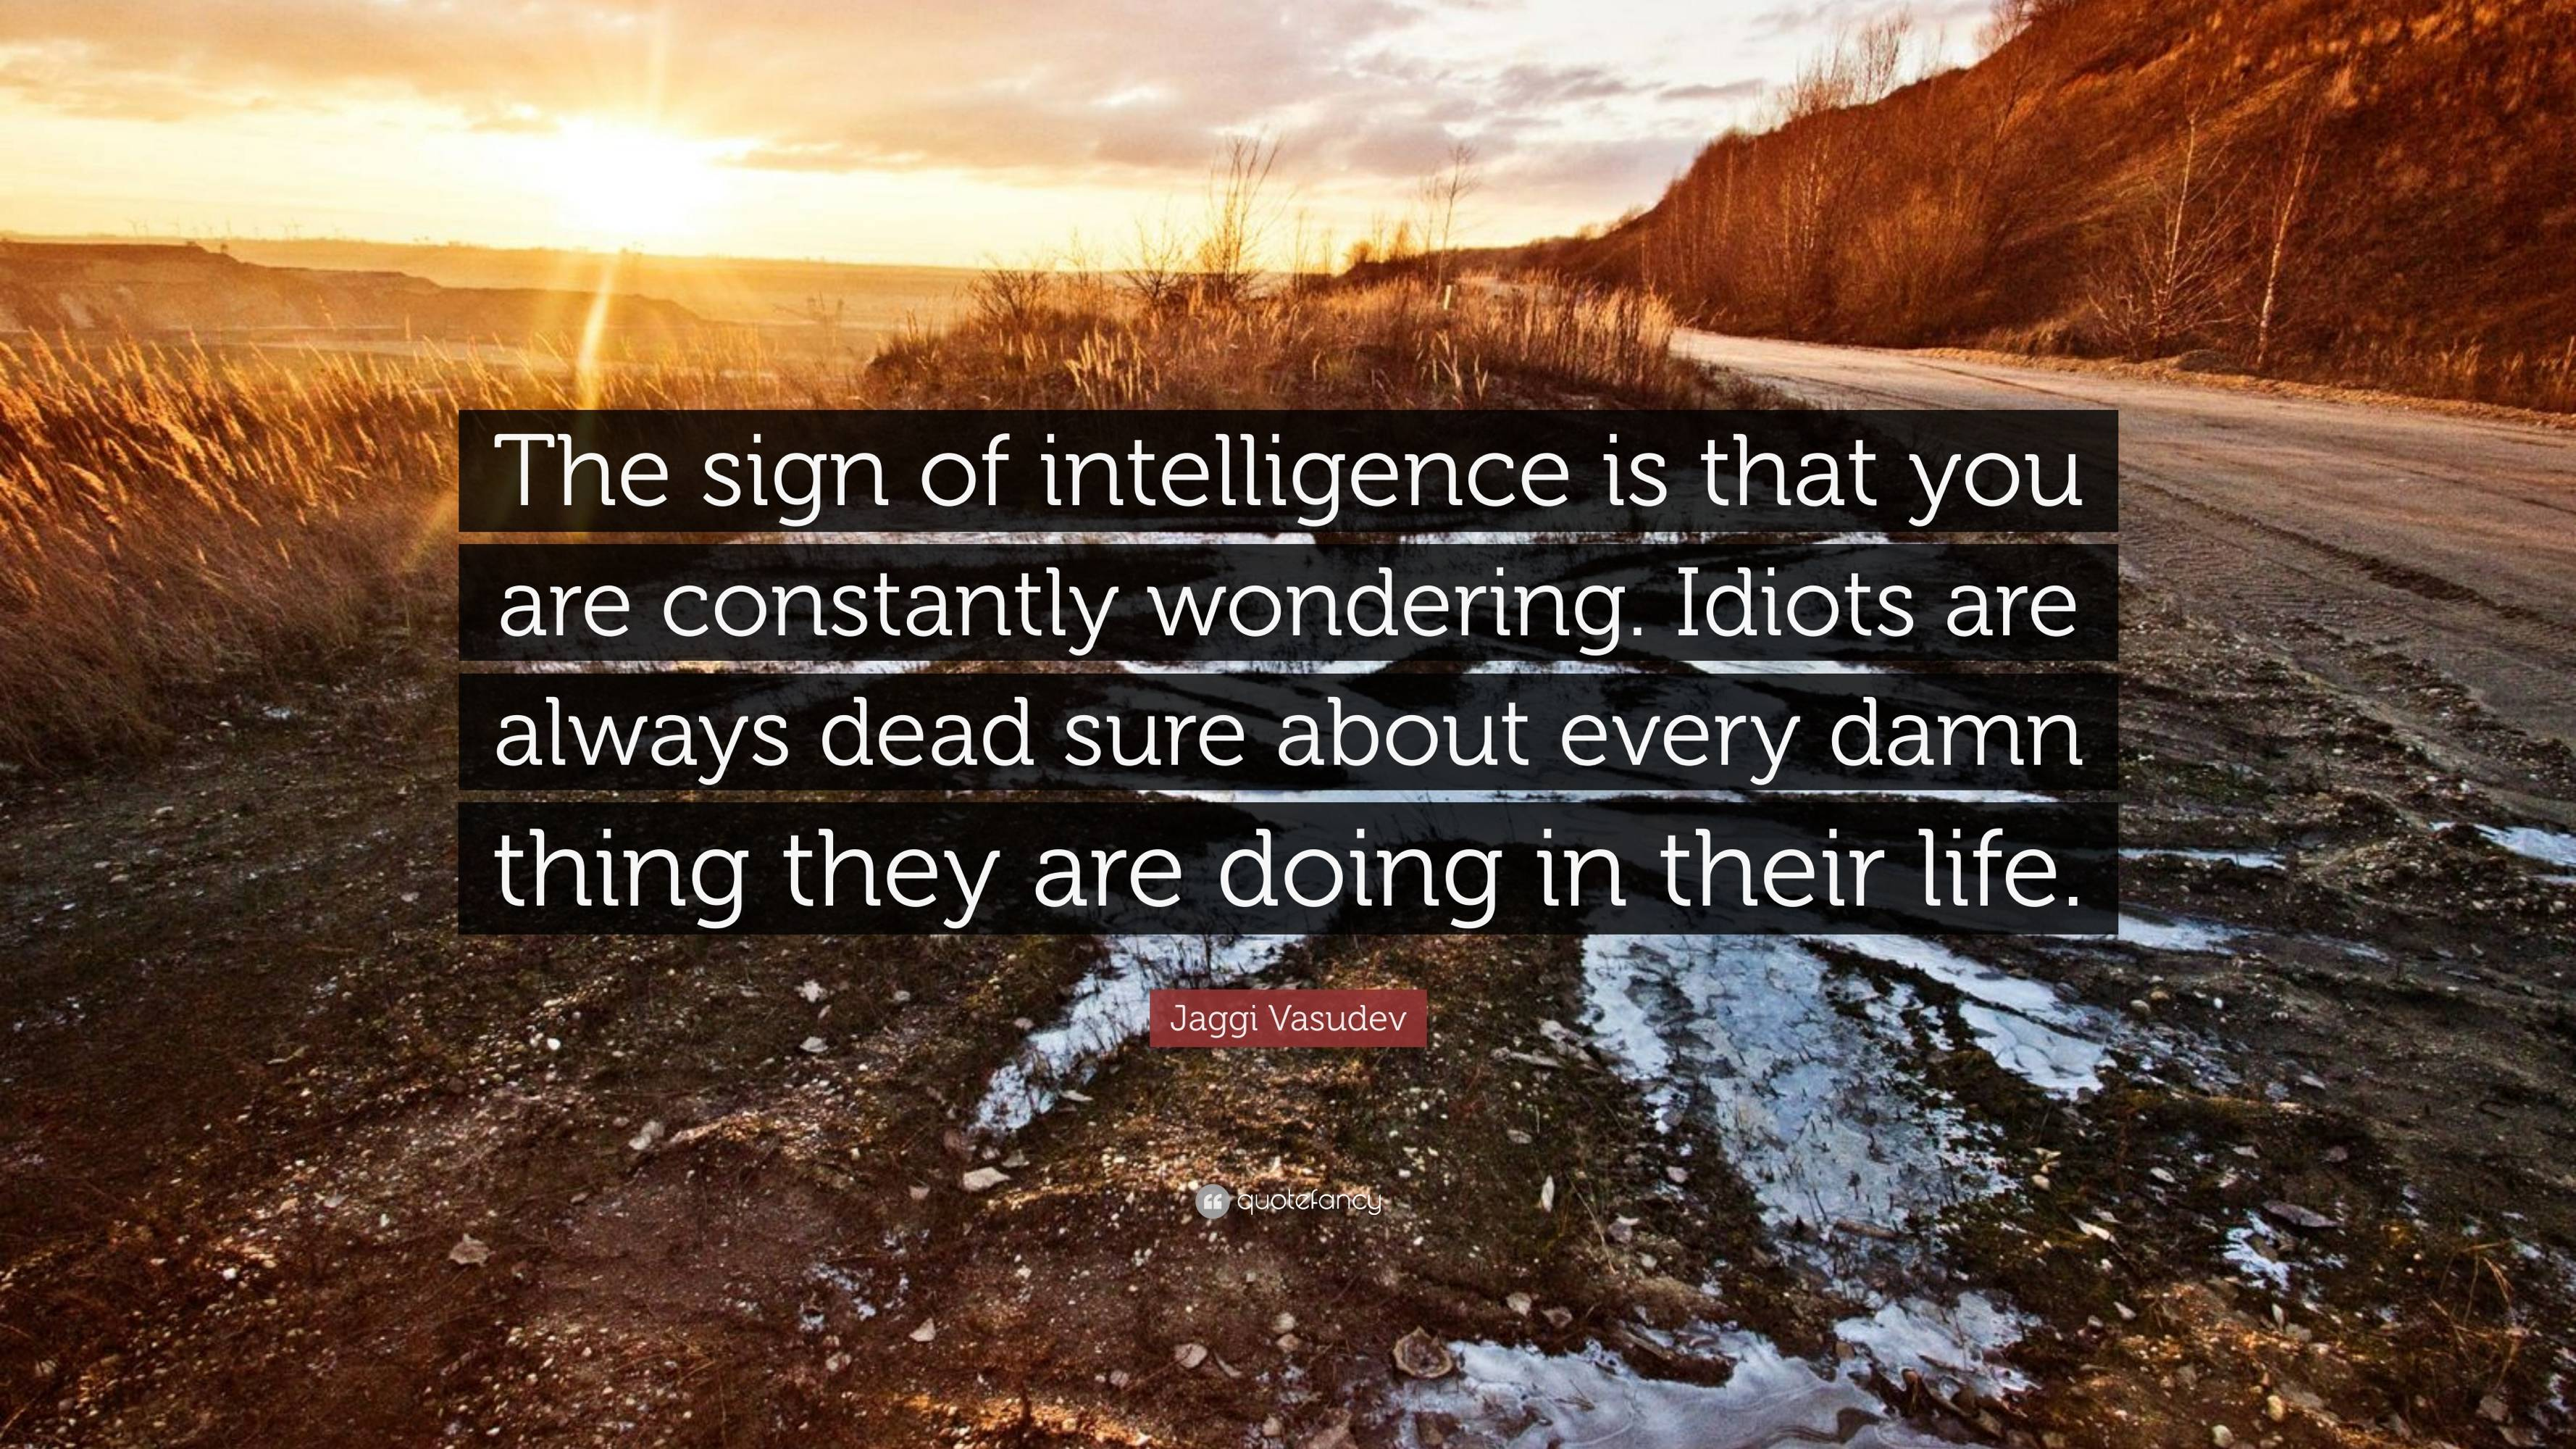 """The sign of intelligence is that you are constantly wondering. Idiots are always dead sure about every damn things they are doing in their life"" — Jaggi Vasudev [3840 x 2160]"